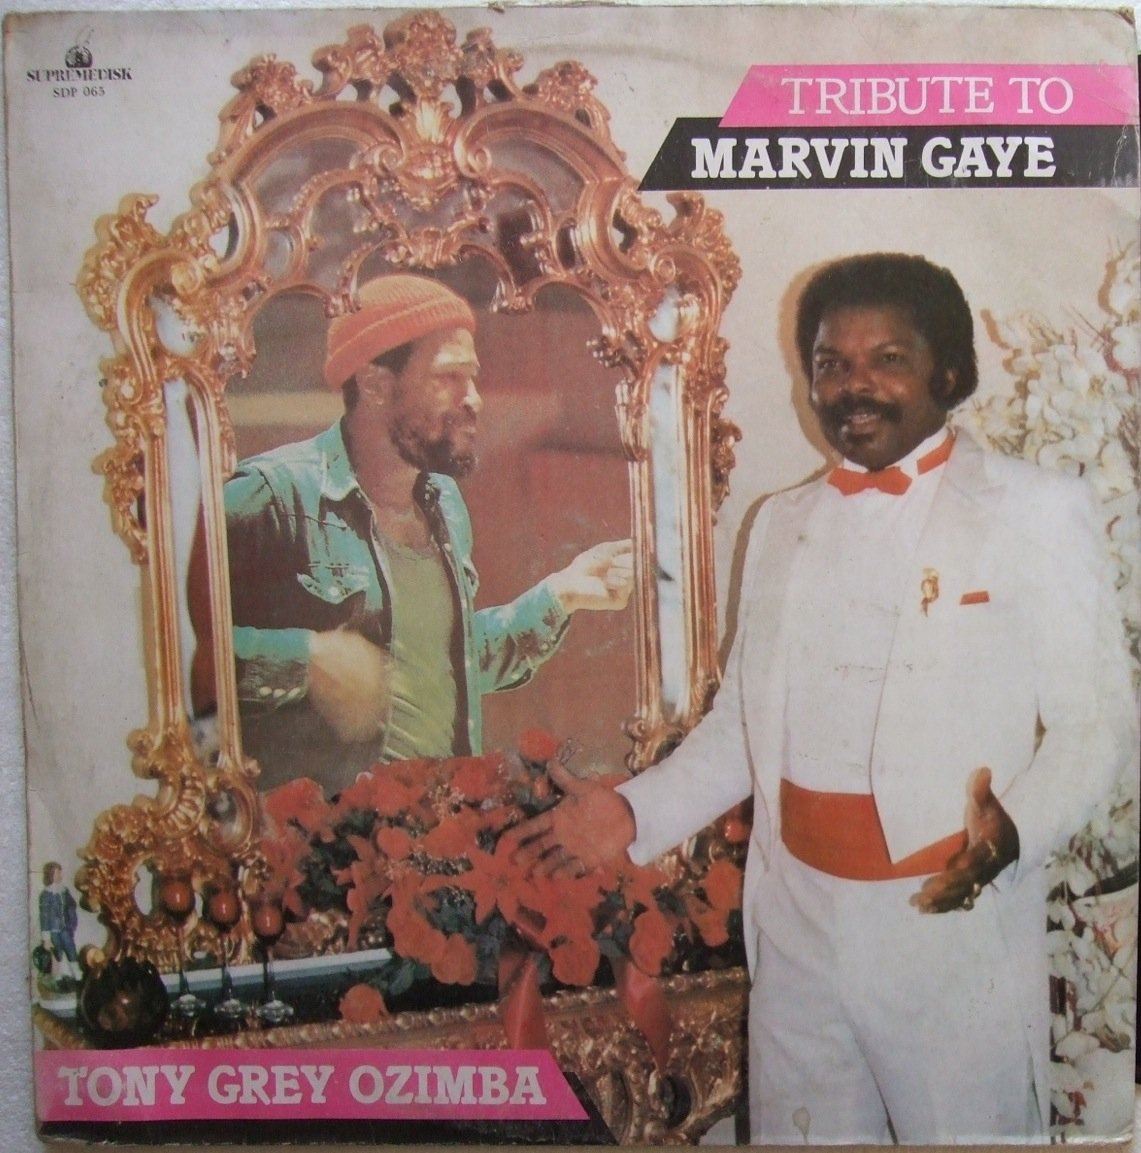 TONY GREY OZIMBA tribute to marvin gaye AFRO ELECTRO MODERN SOUL LP � mp3 listen